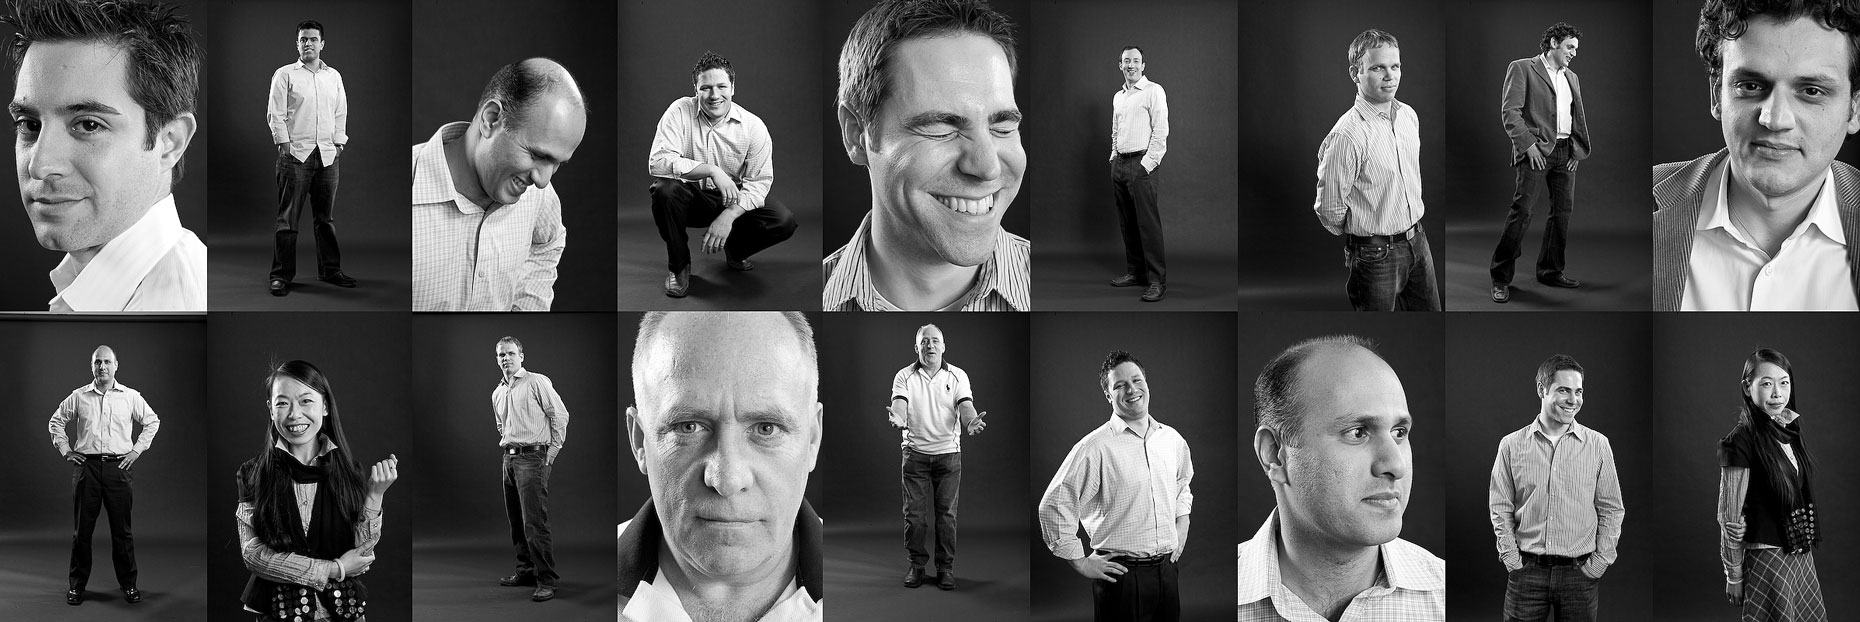 DirectoryM for Inc Magazine  • Jason Grow Photography • Executive Portraits Headshots